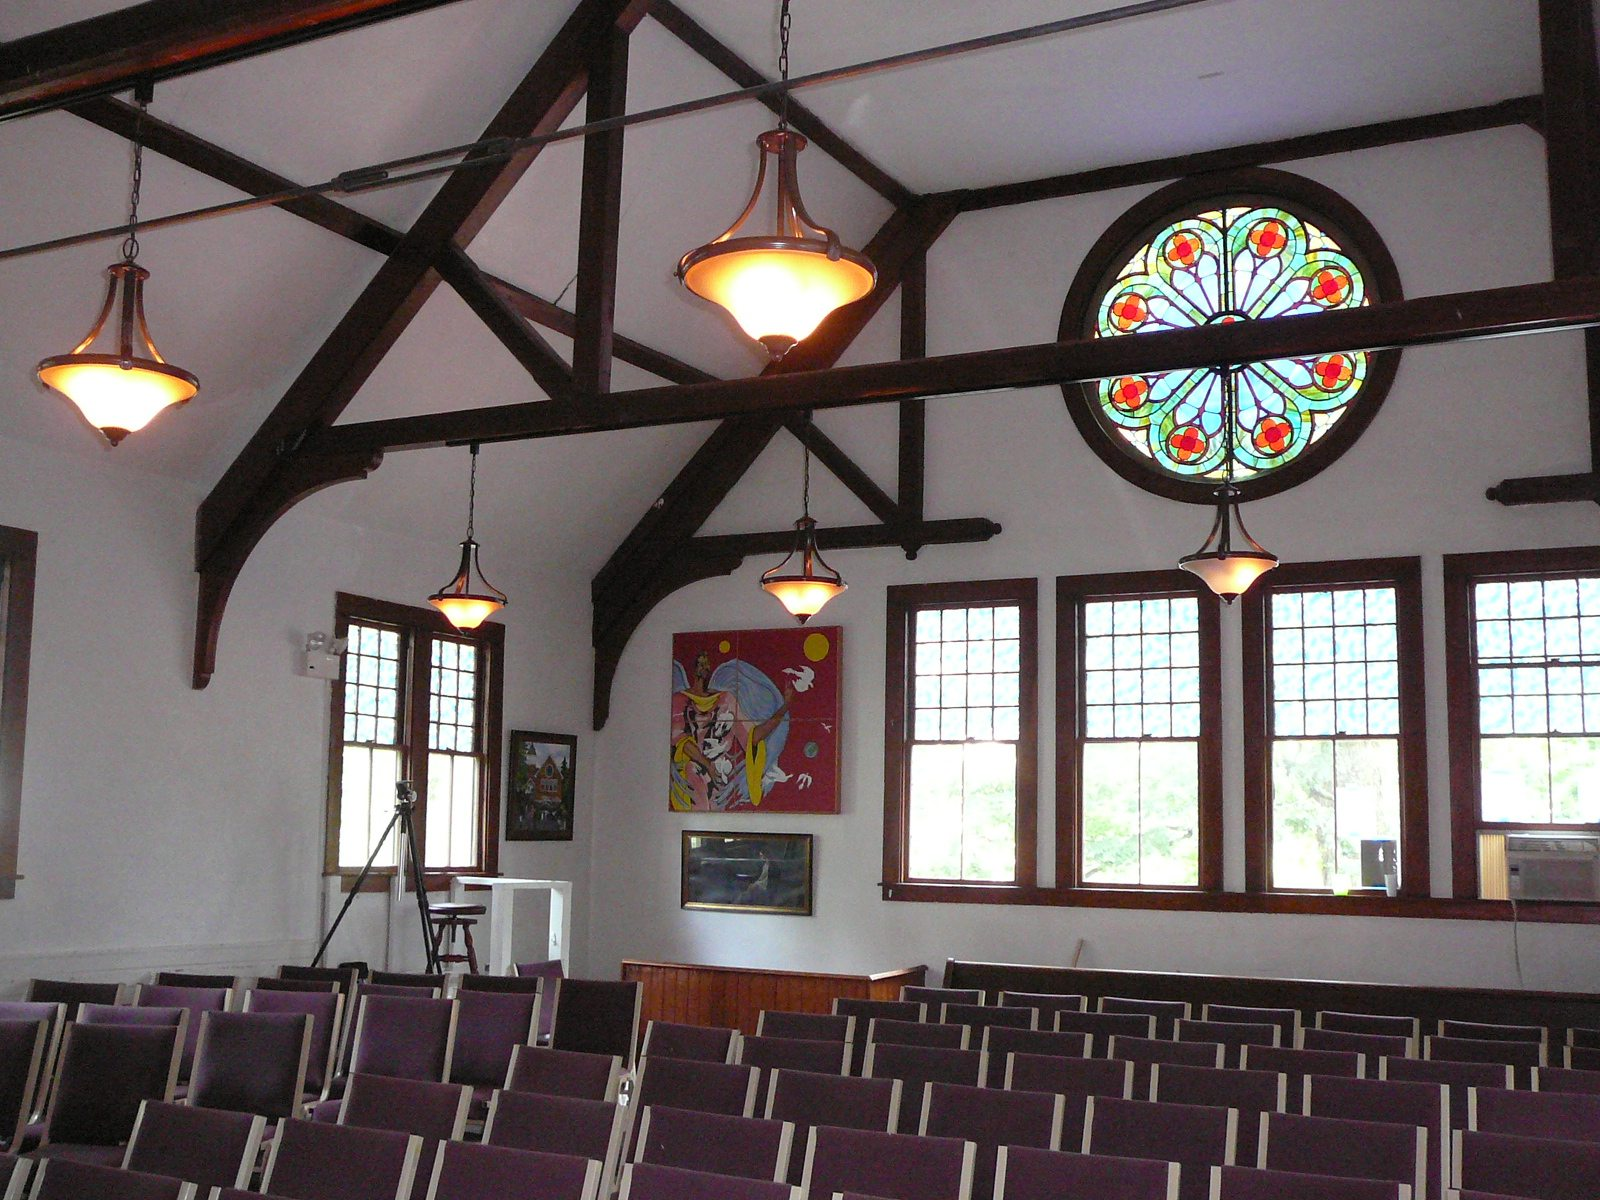 2 interior worship space